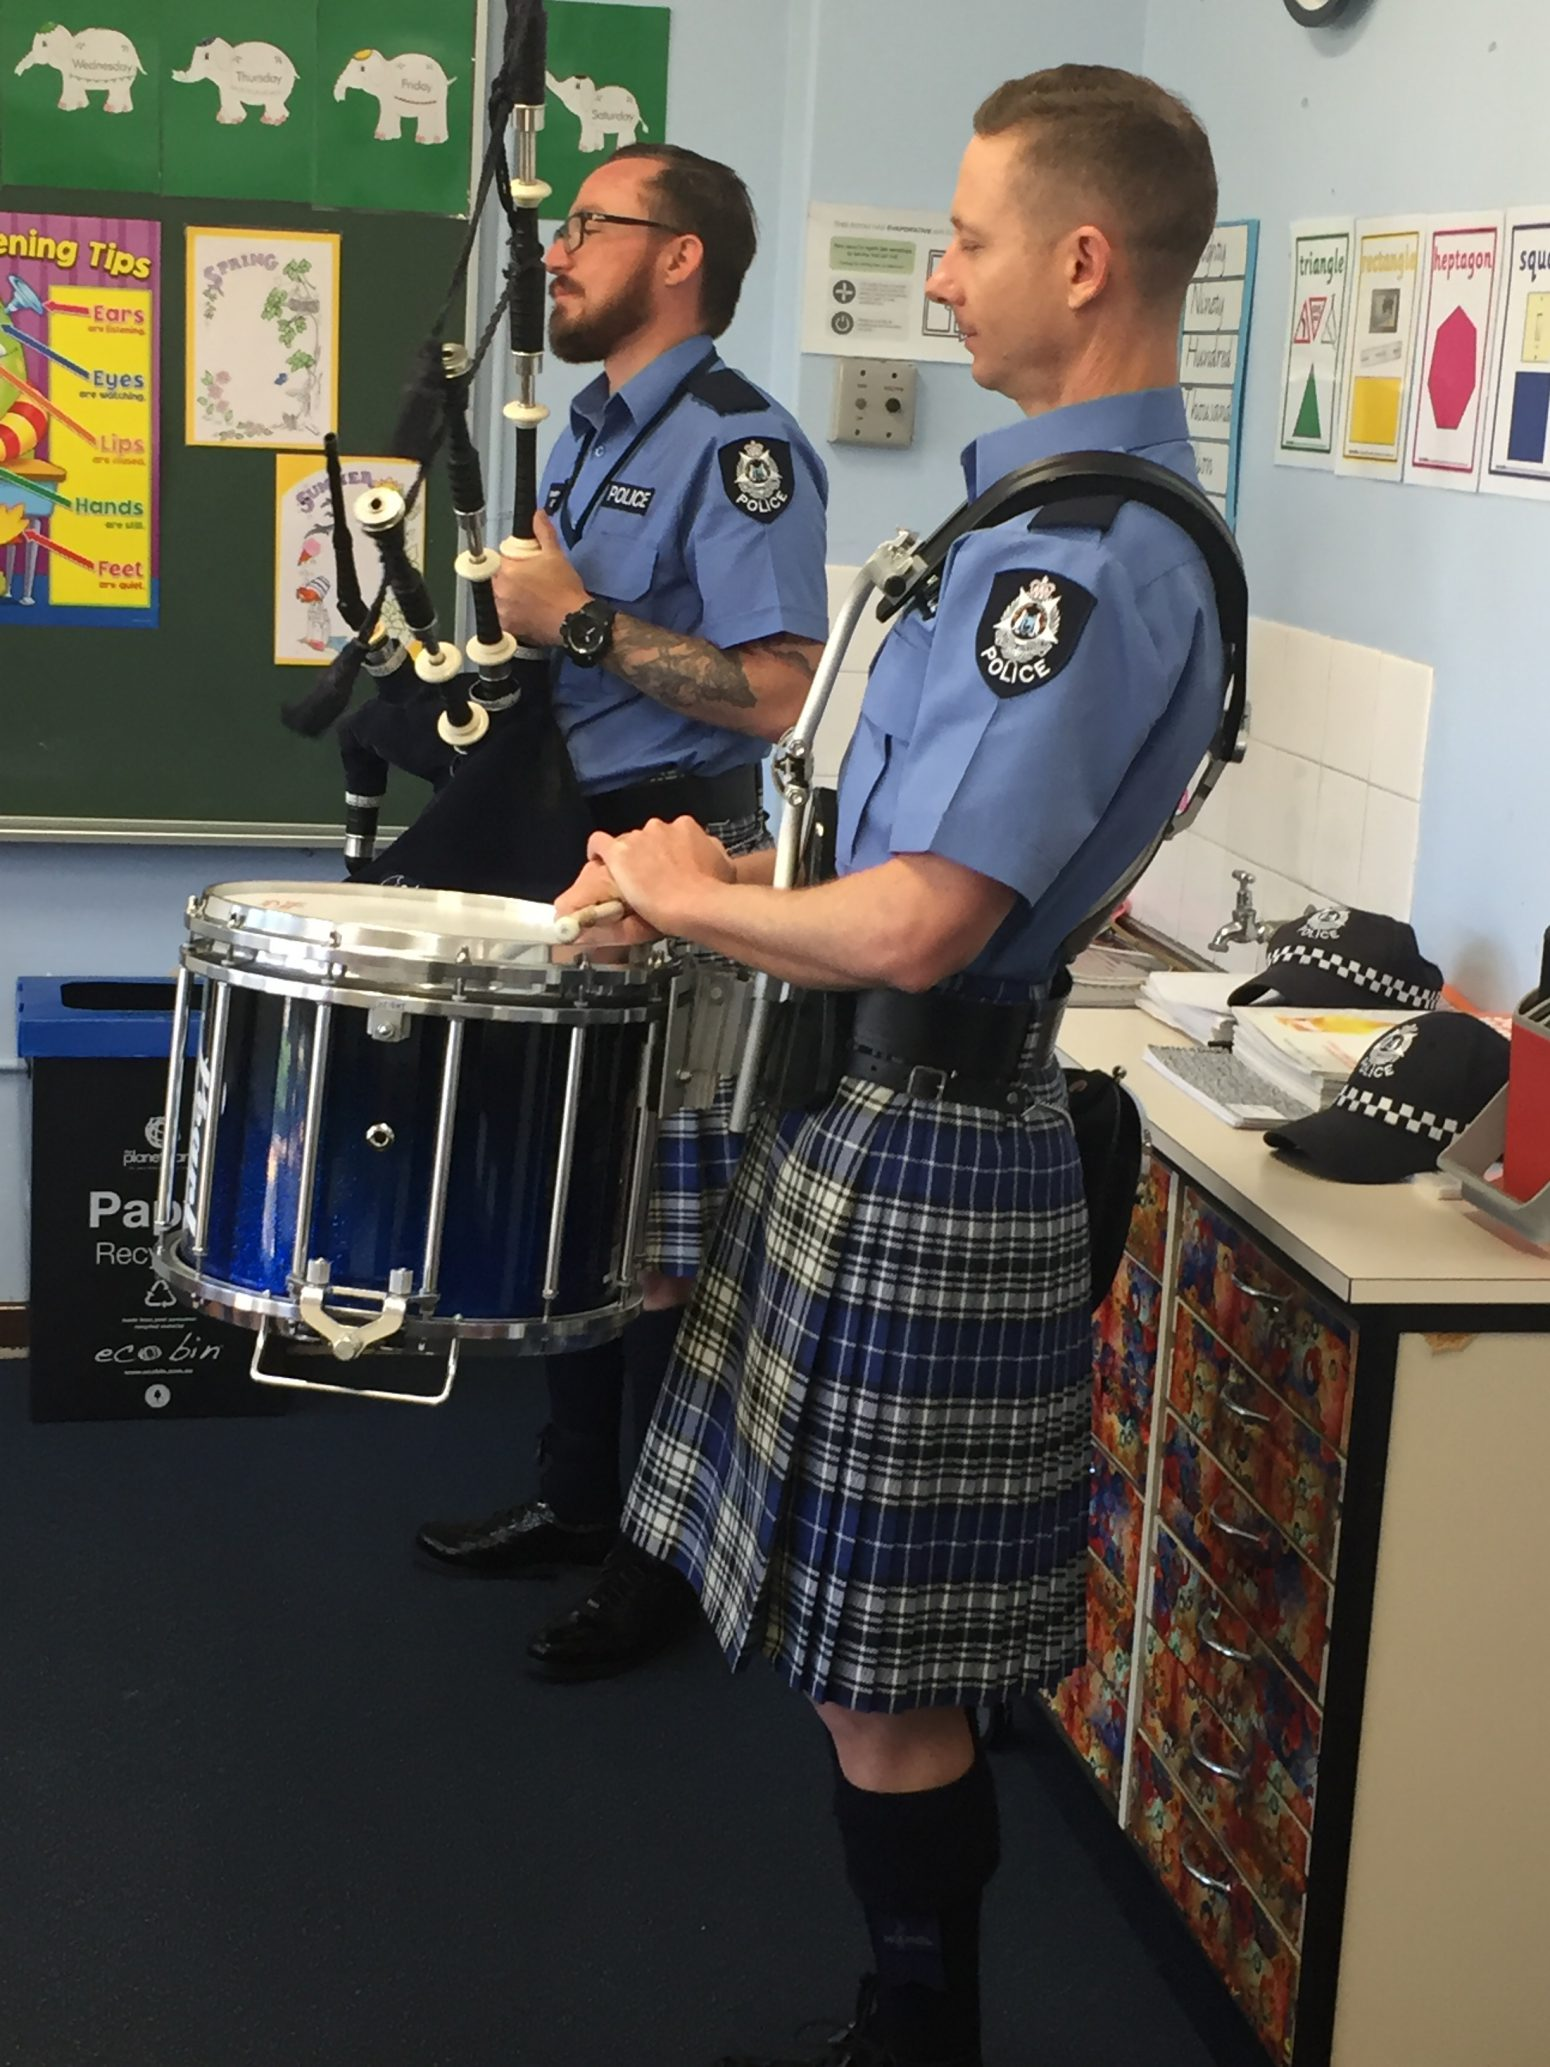 WAPOL – Pipe Band